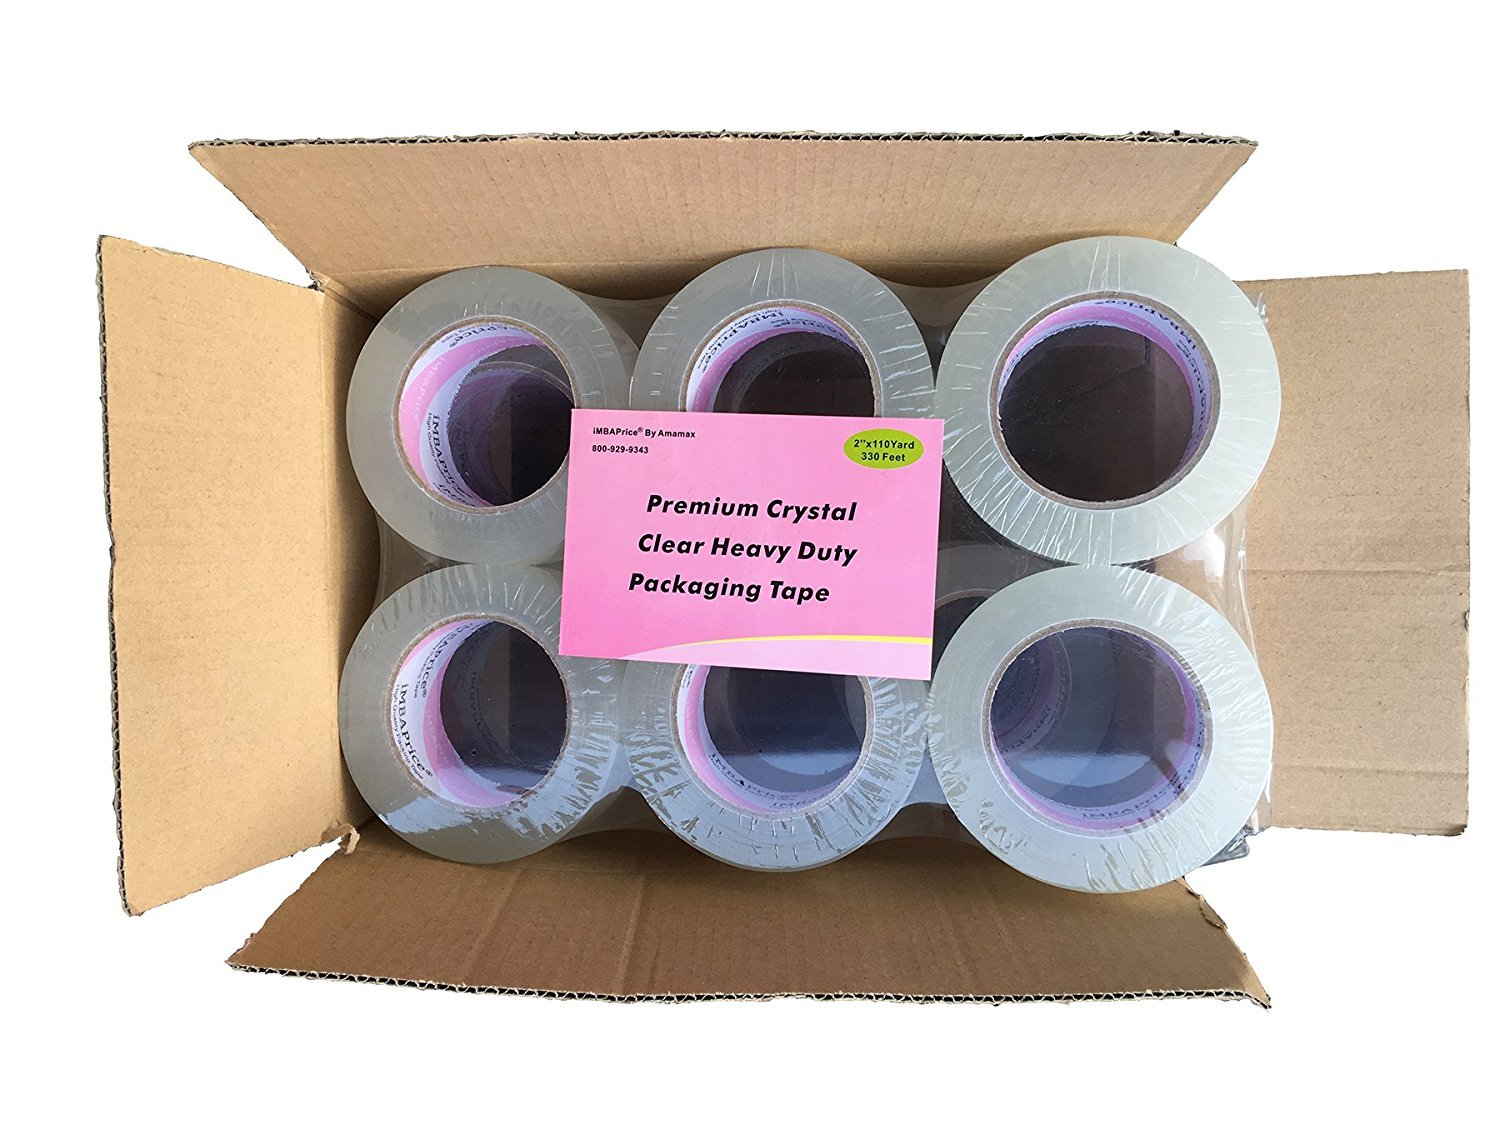 2x330 Feet iMBAPrice Premium Packing Tape 2 Wide 2.6 mil Heavy Duty Ultra Clear Extra Long Lasting Shipping Packaging Tape - 2 Roll of 110 Yards Total 220 Yards